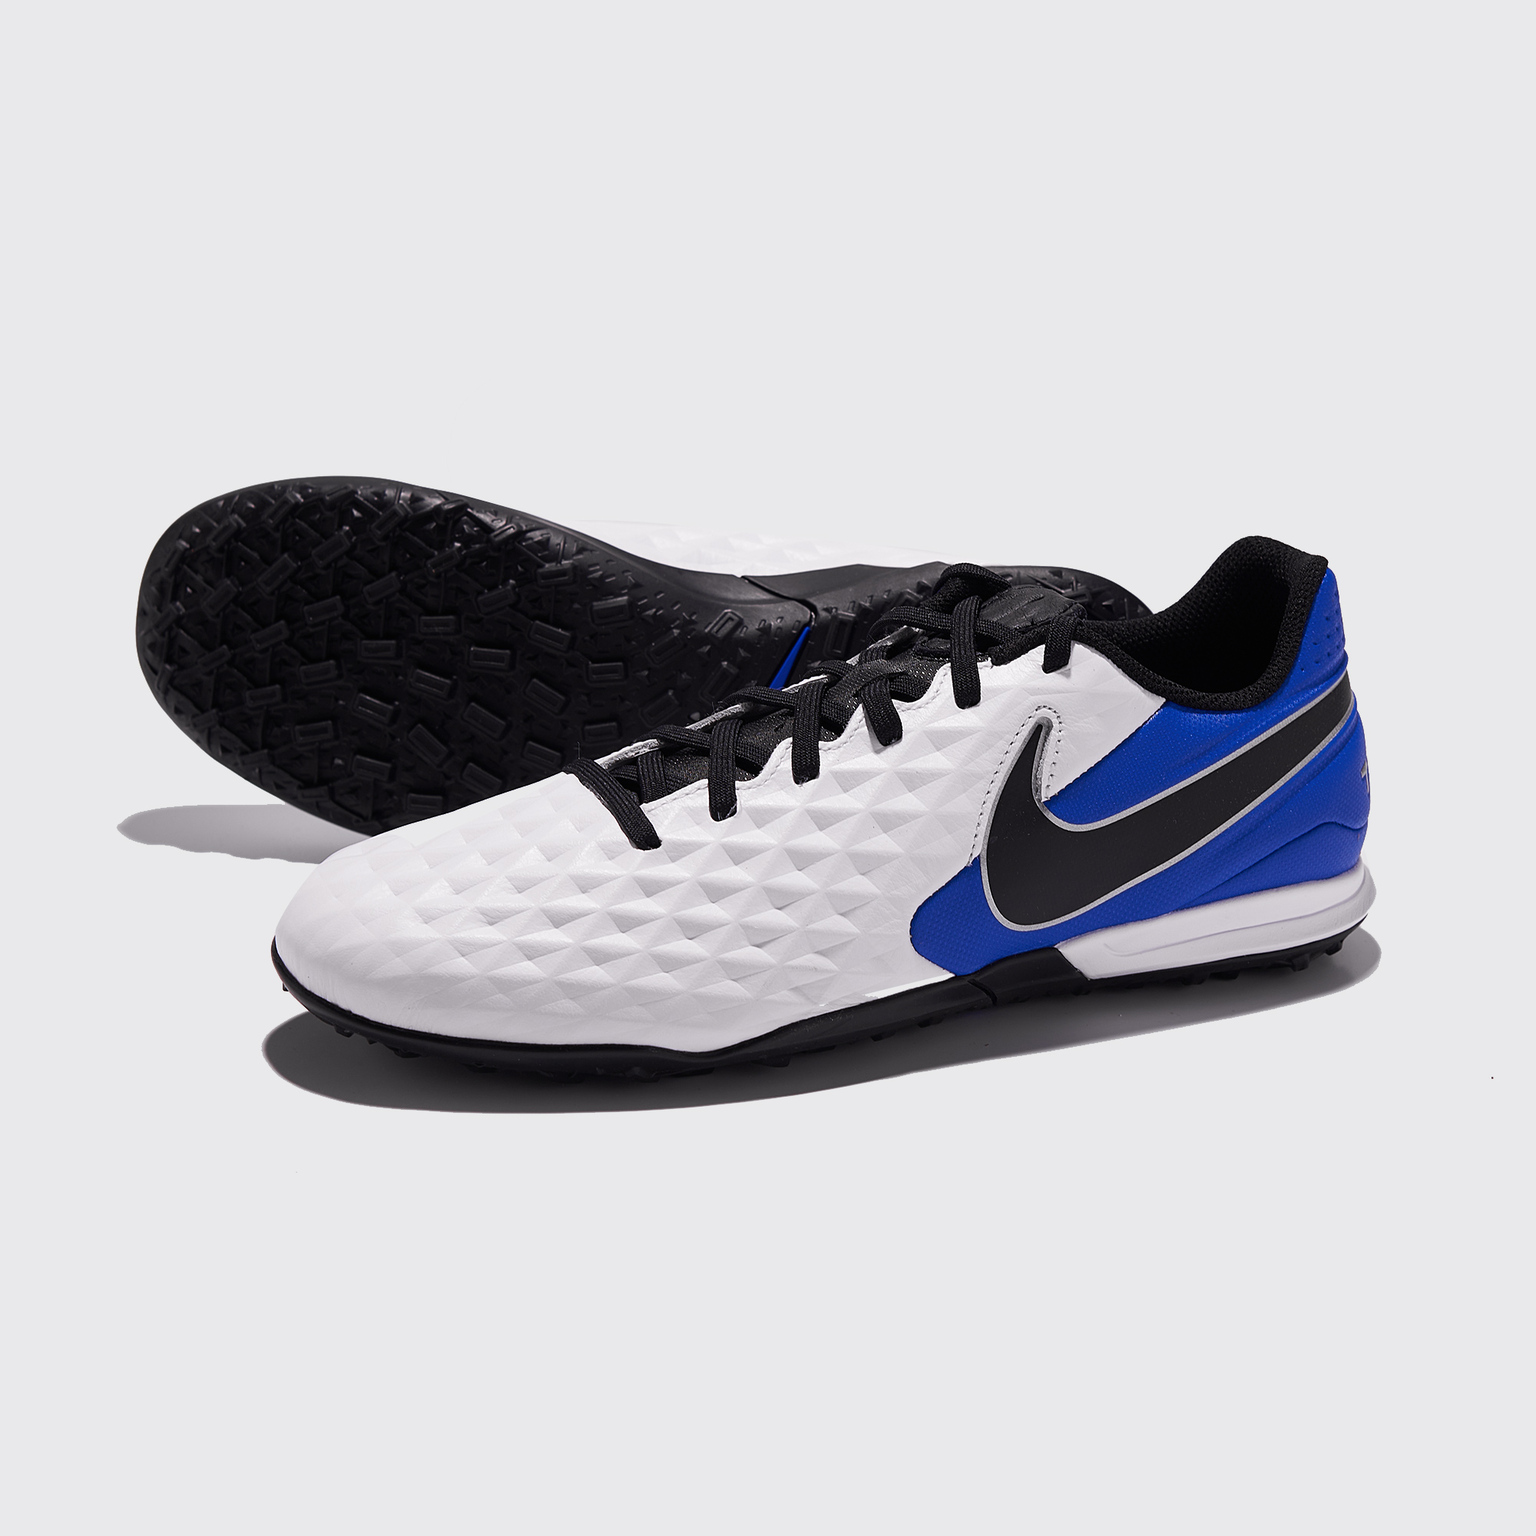 Шиповки Nike Legend 8 Academy TF AT6100-104 шиповки детские nike legend 8 academy tf at5736 606